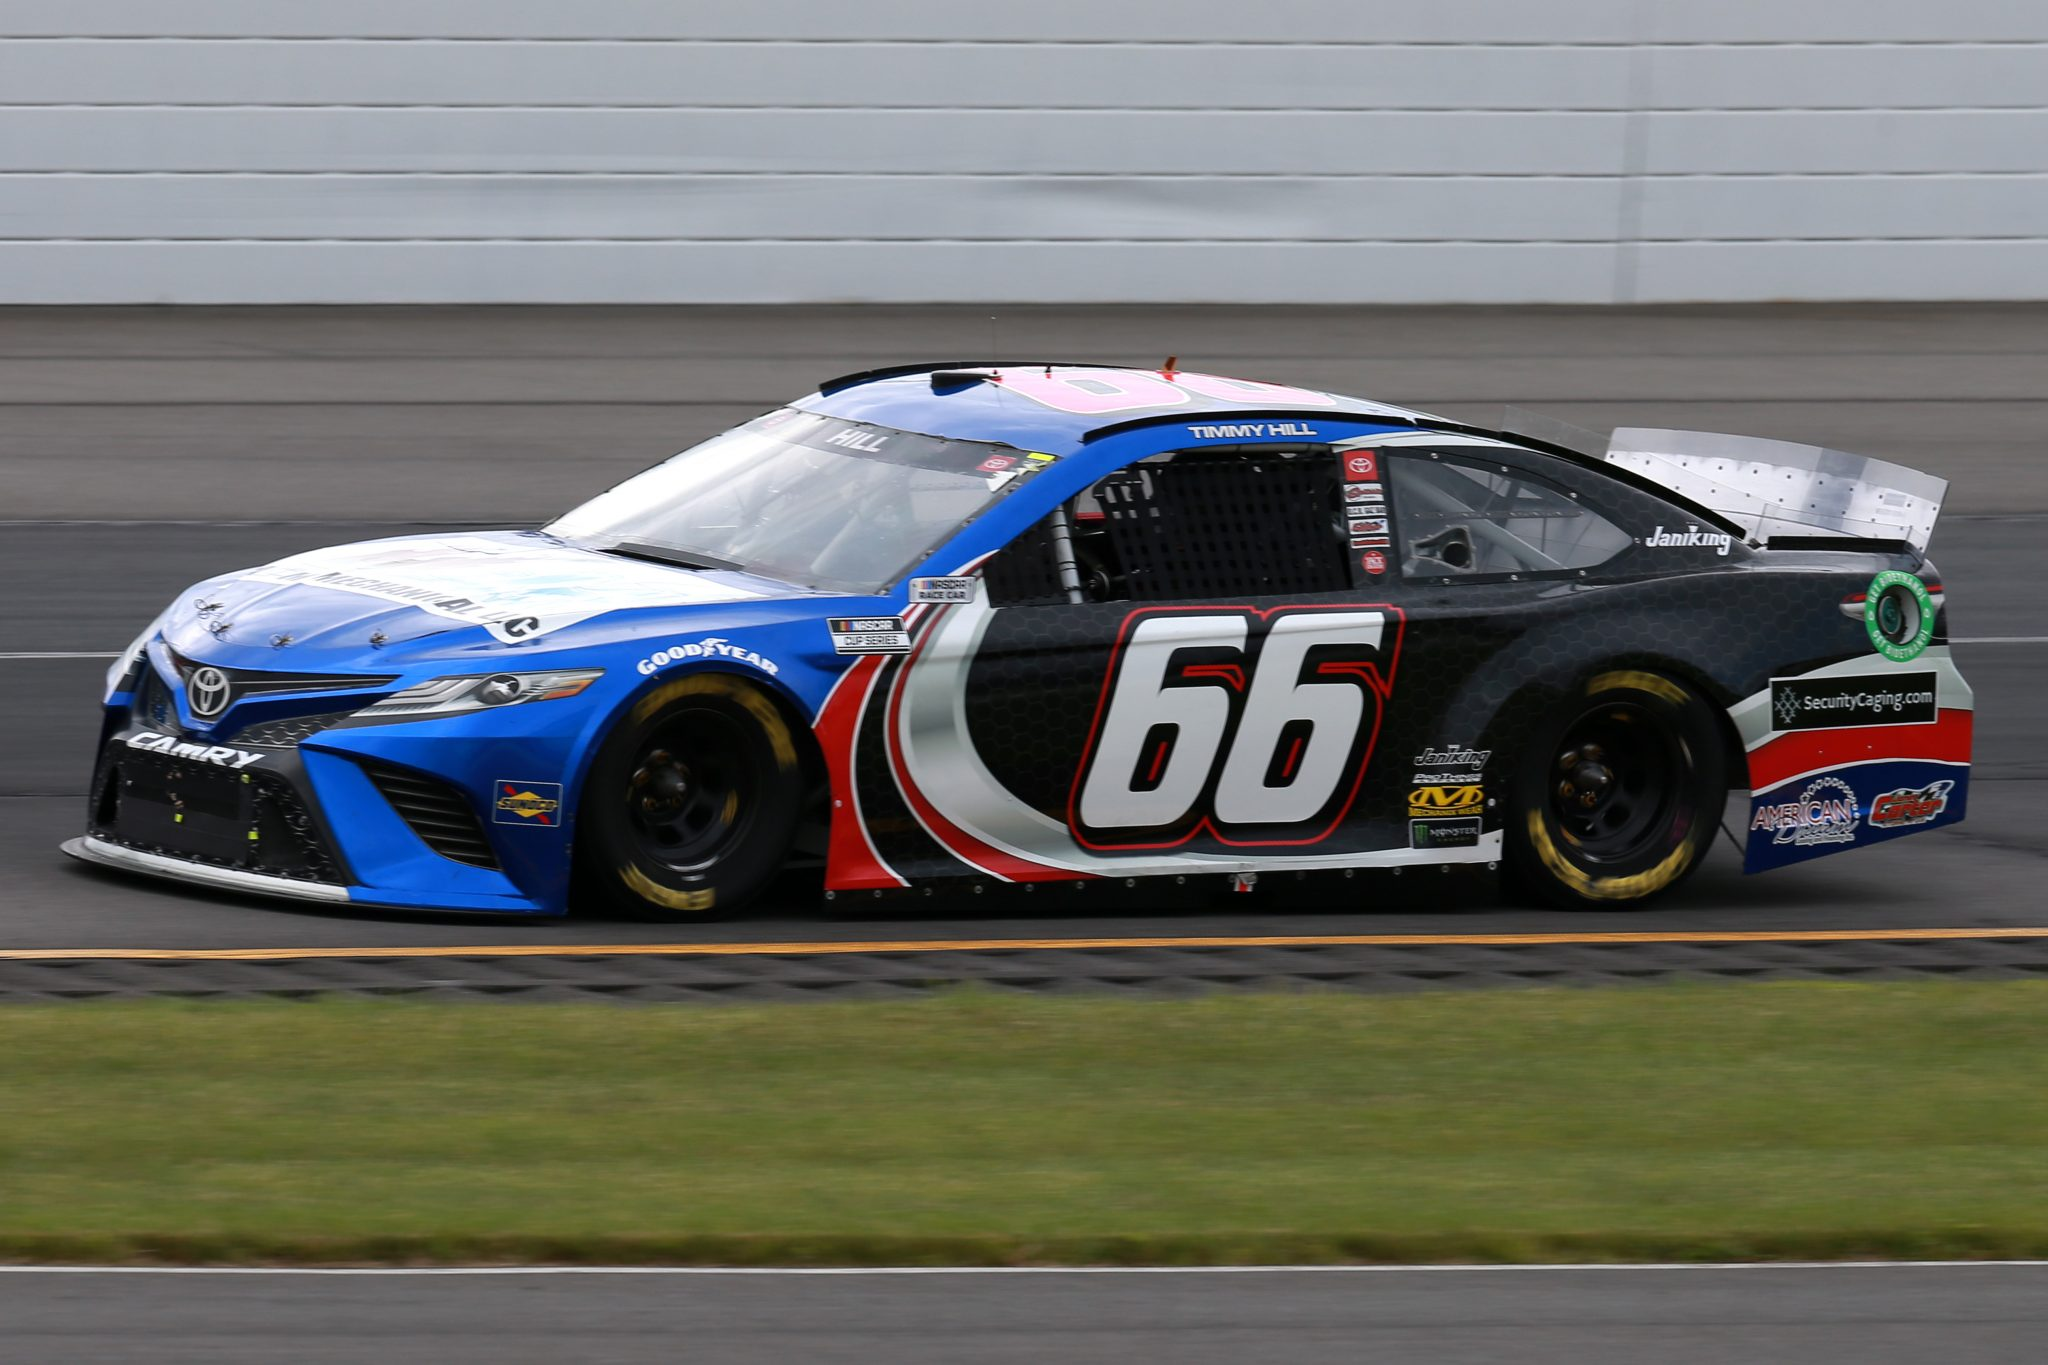 LONG POND, PENNSYLVANIA - JUNE 26: Timmy Hill, driver of the #66 M&M Mechanical LLC Toyota, drives during the NASCAR Cup Series Pocono Organics CBD 325 at Pocono Raceway on June 26, 2021 in Long Pond, Pennsylvania. (Photo by Sean Gardner/Getty Images) | Getty Images